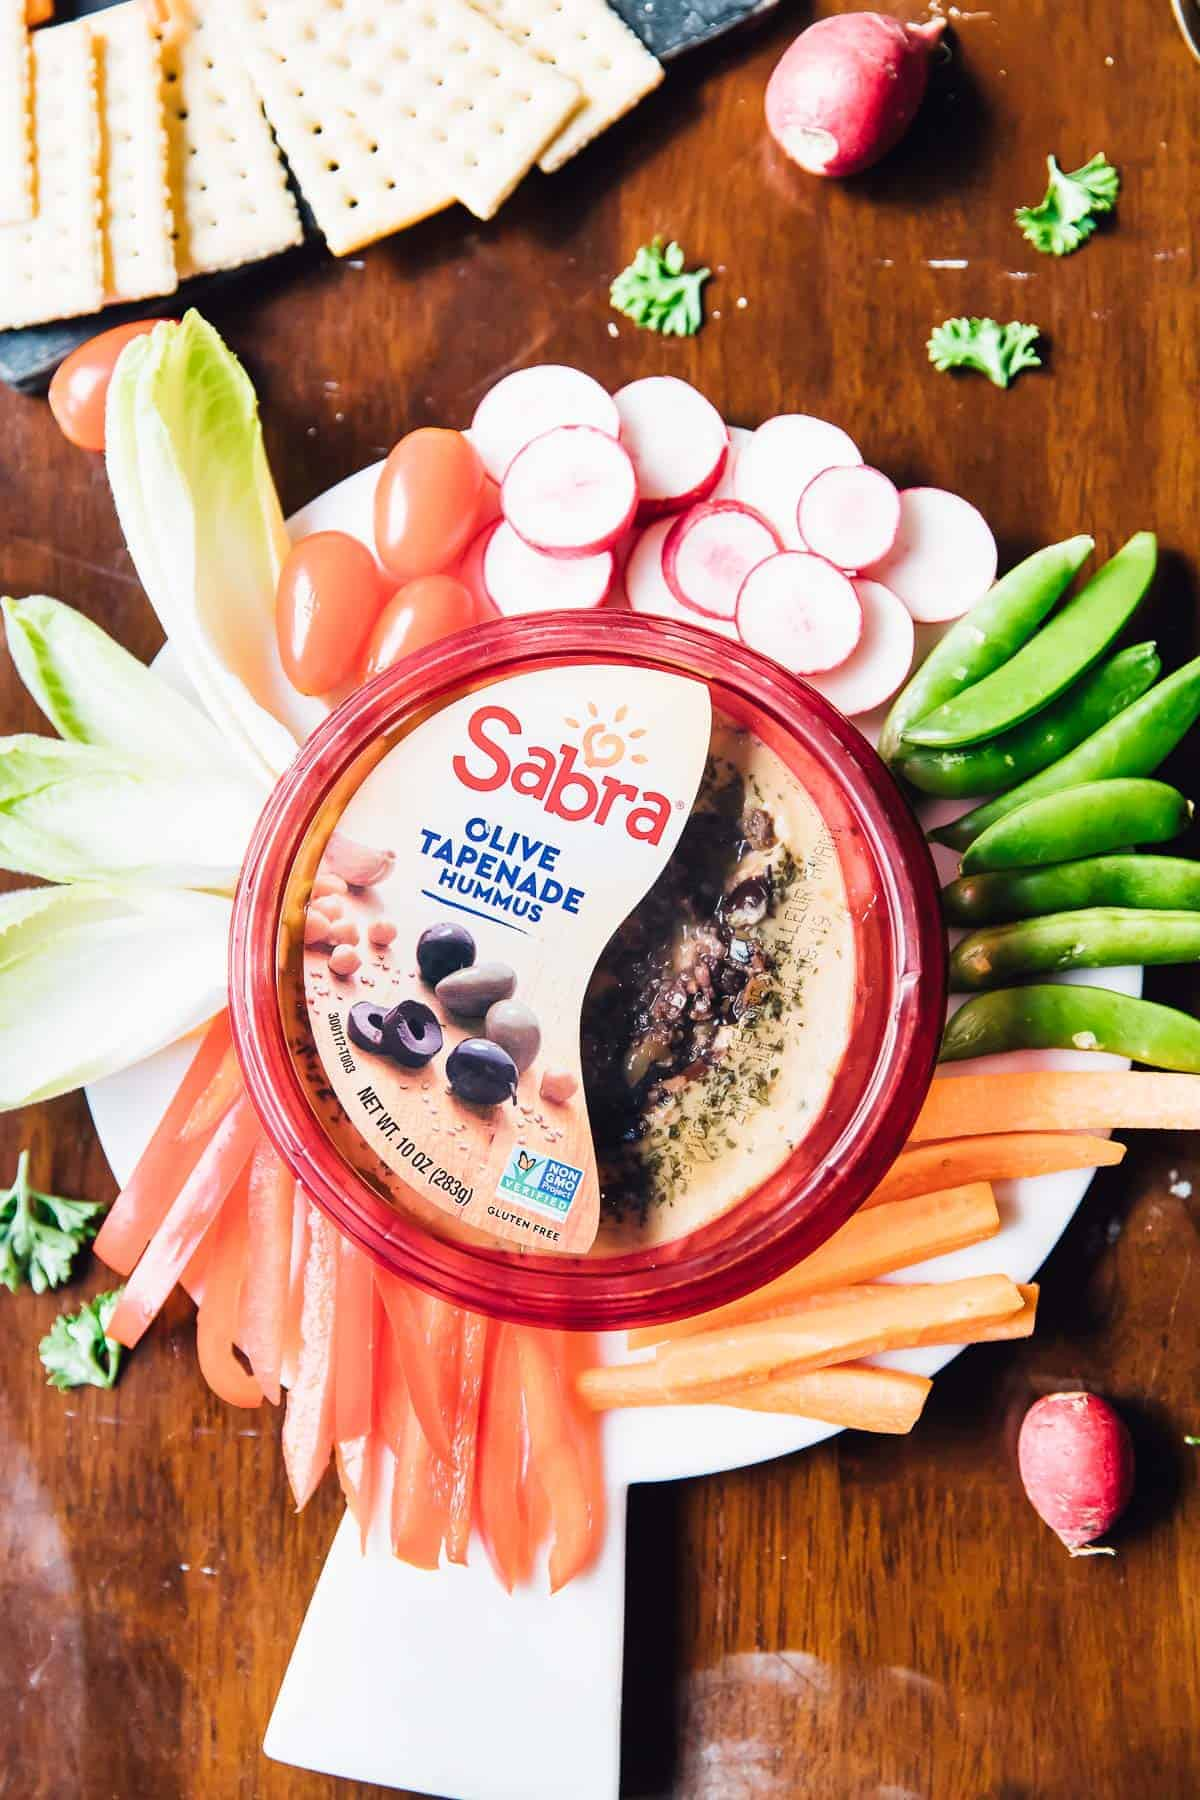 Top down shot of dip surrounded by raw vegetables.